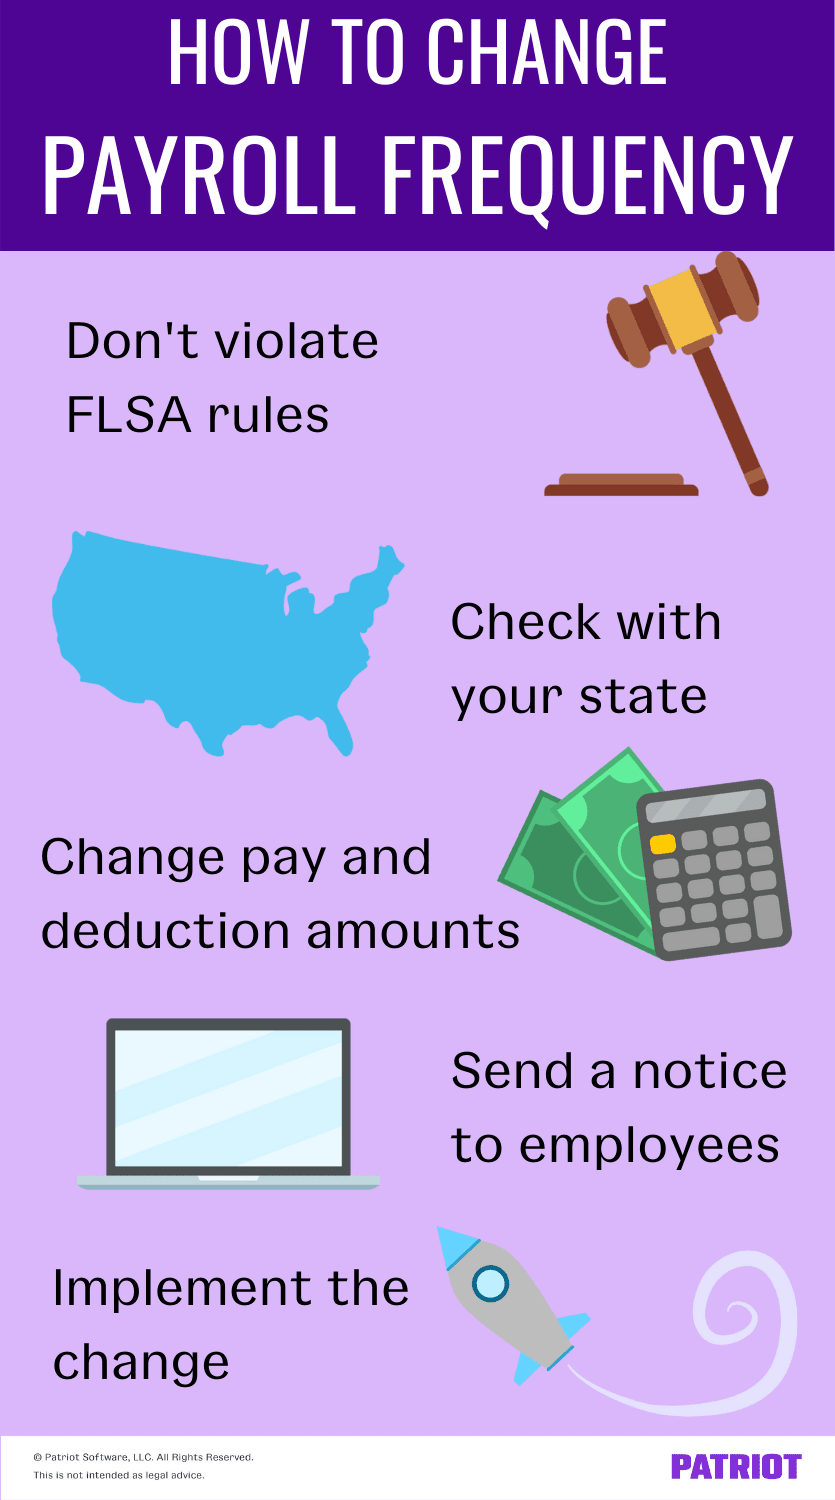 How to change payroll frequency: 1) don't violate FLSA rules 2) Check with your state 3) Change pay and deduction amounts 4) Send a notice to employees 5) Implement the change